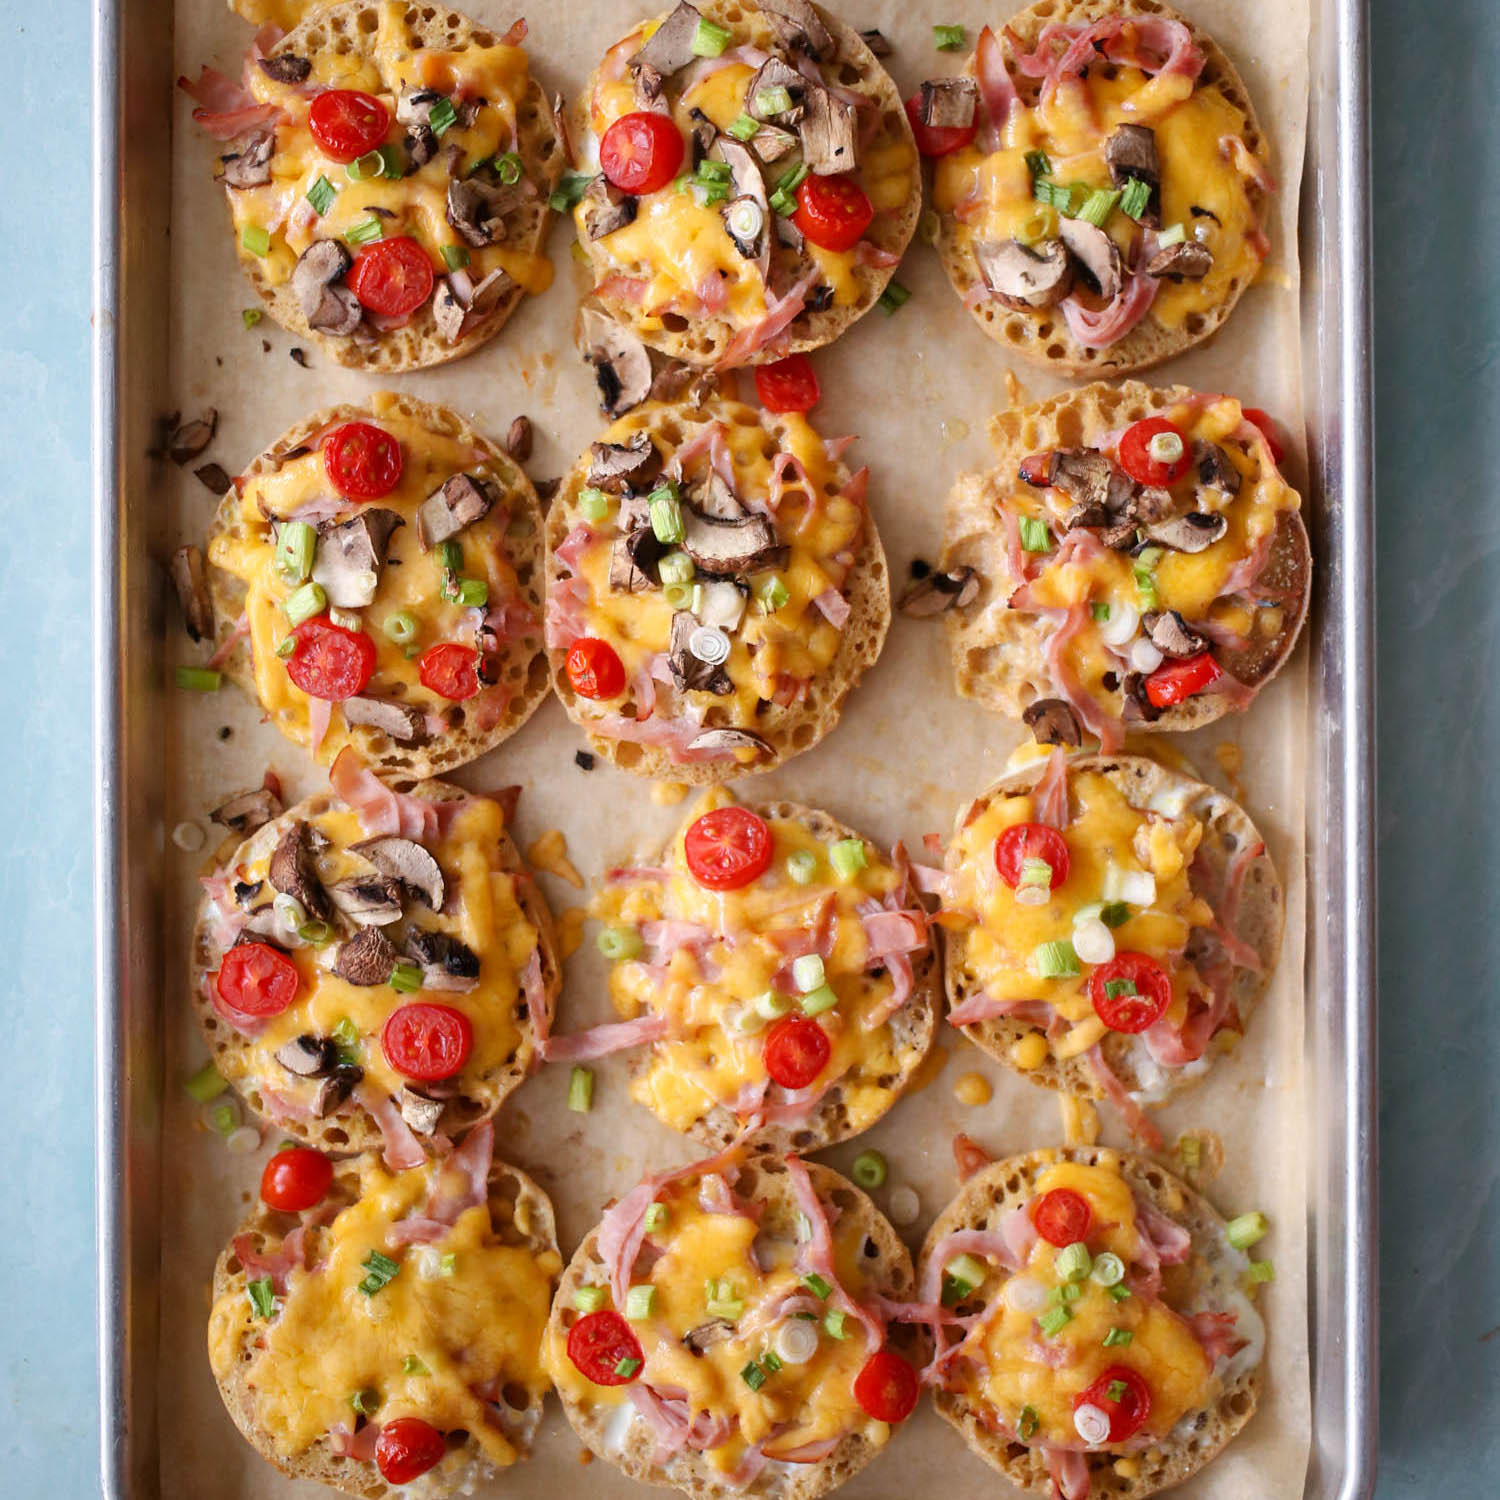 English Muffin Breakfast Pizzas Our Best Bites